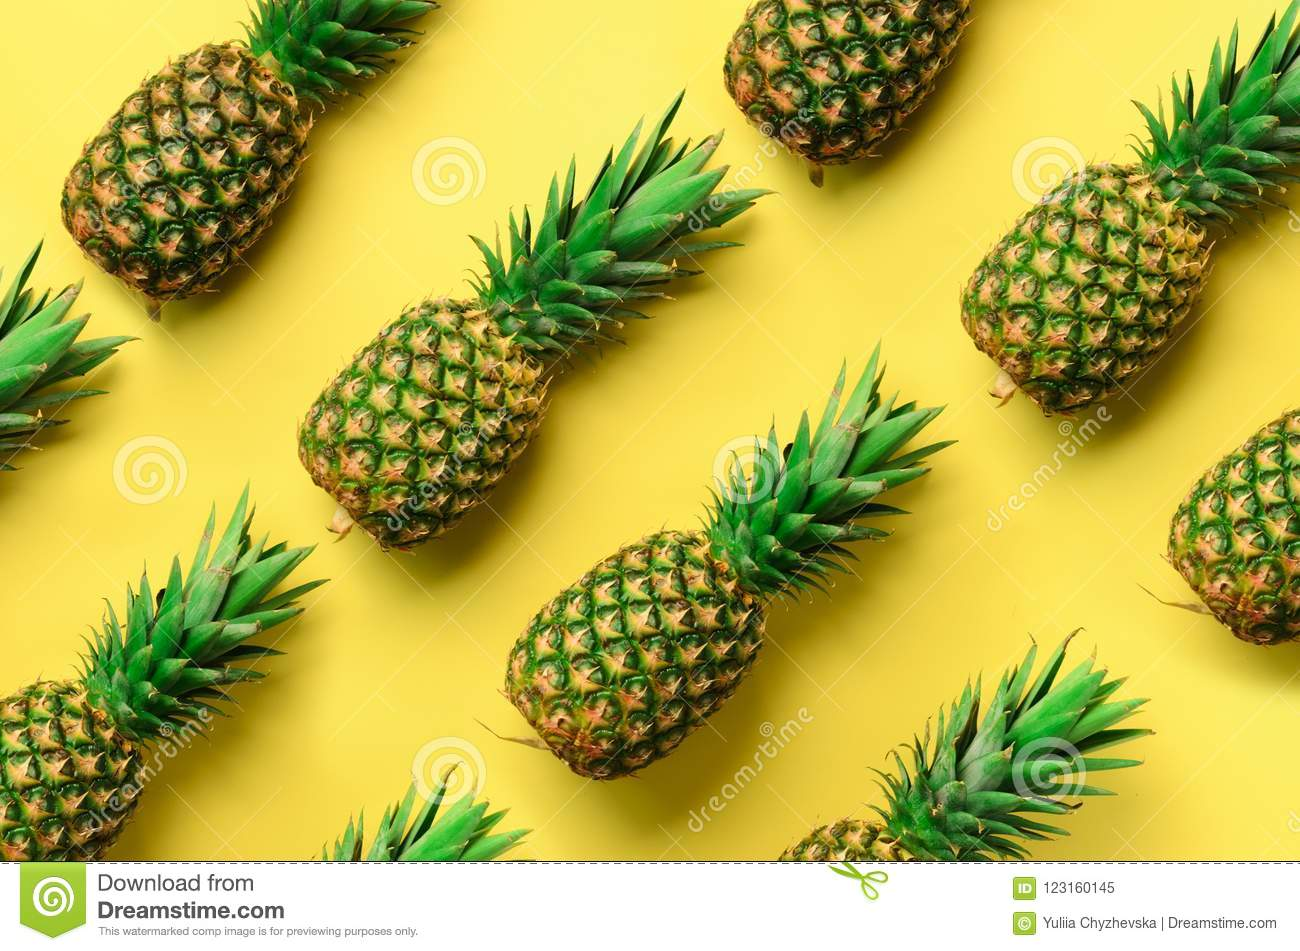 Fresh pineapples on yellow background. Top View. Pop art design, creative concept. Copy Space. Bright pineapple pattern